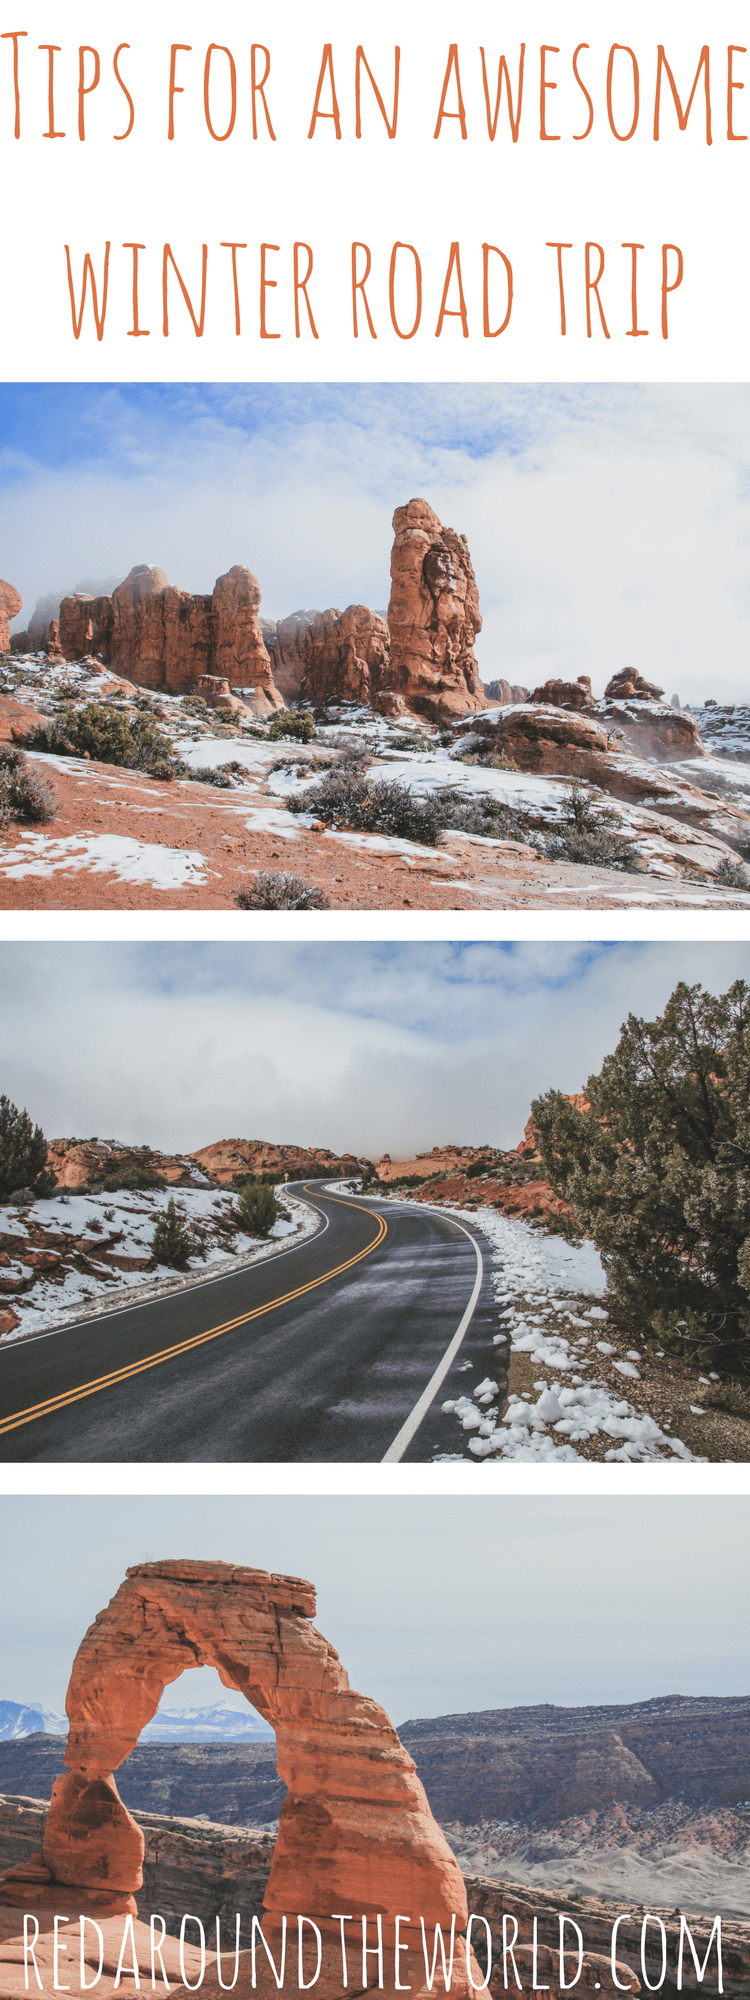 Tips for an awesome winter road trip in the US